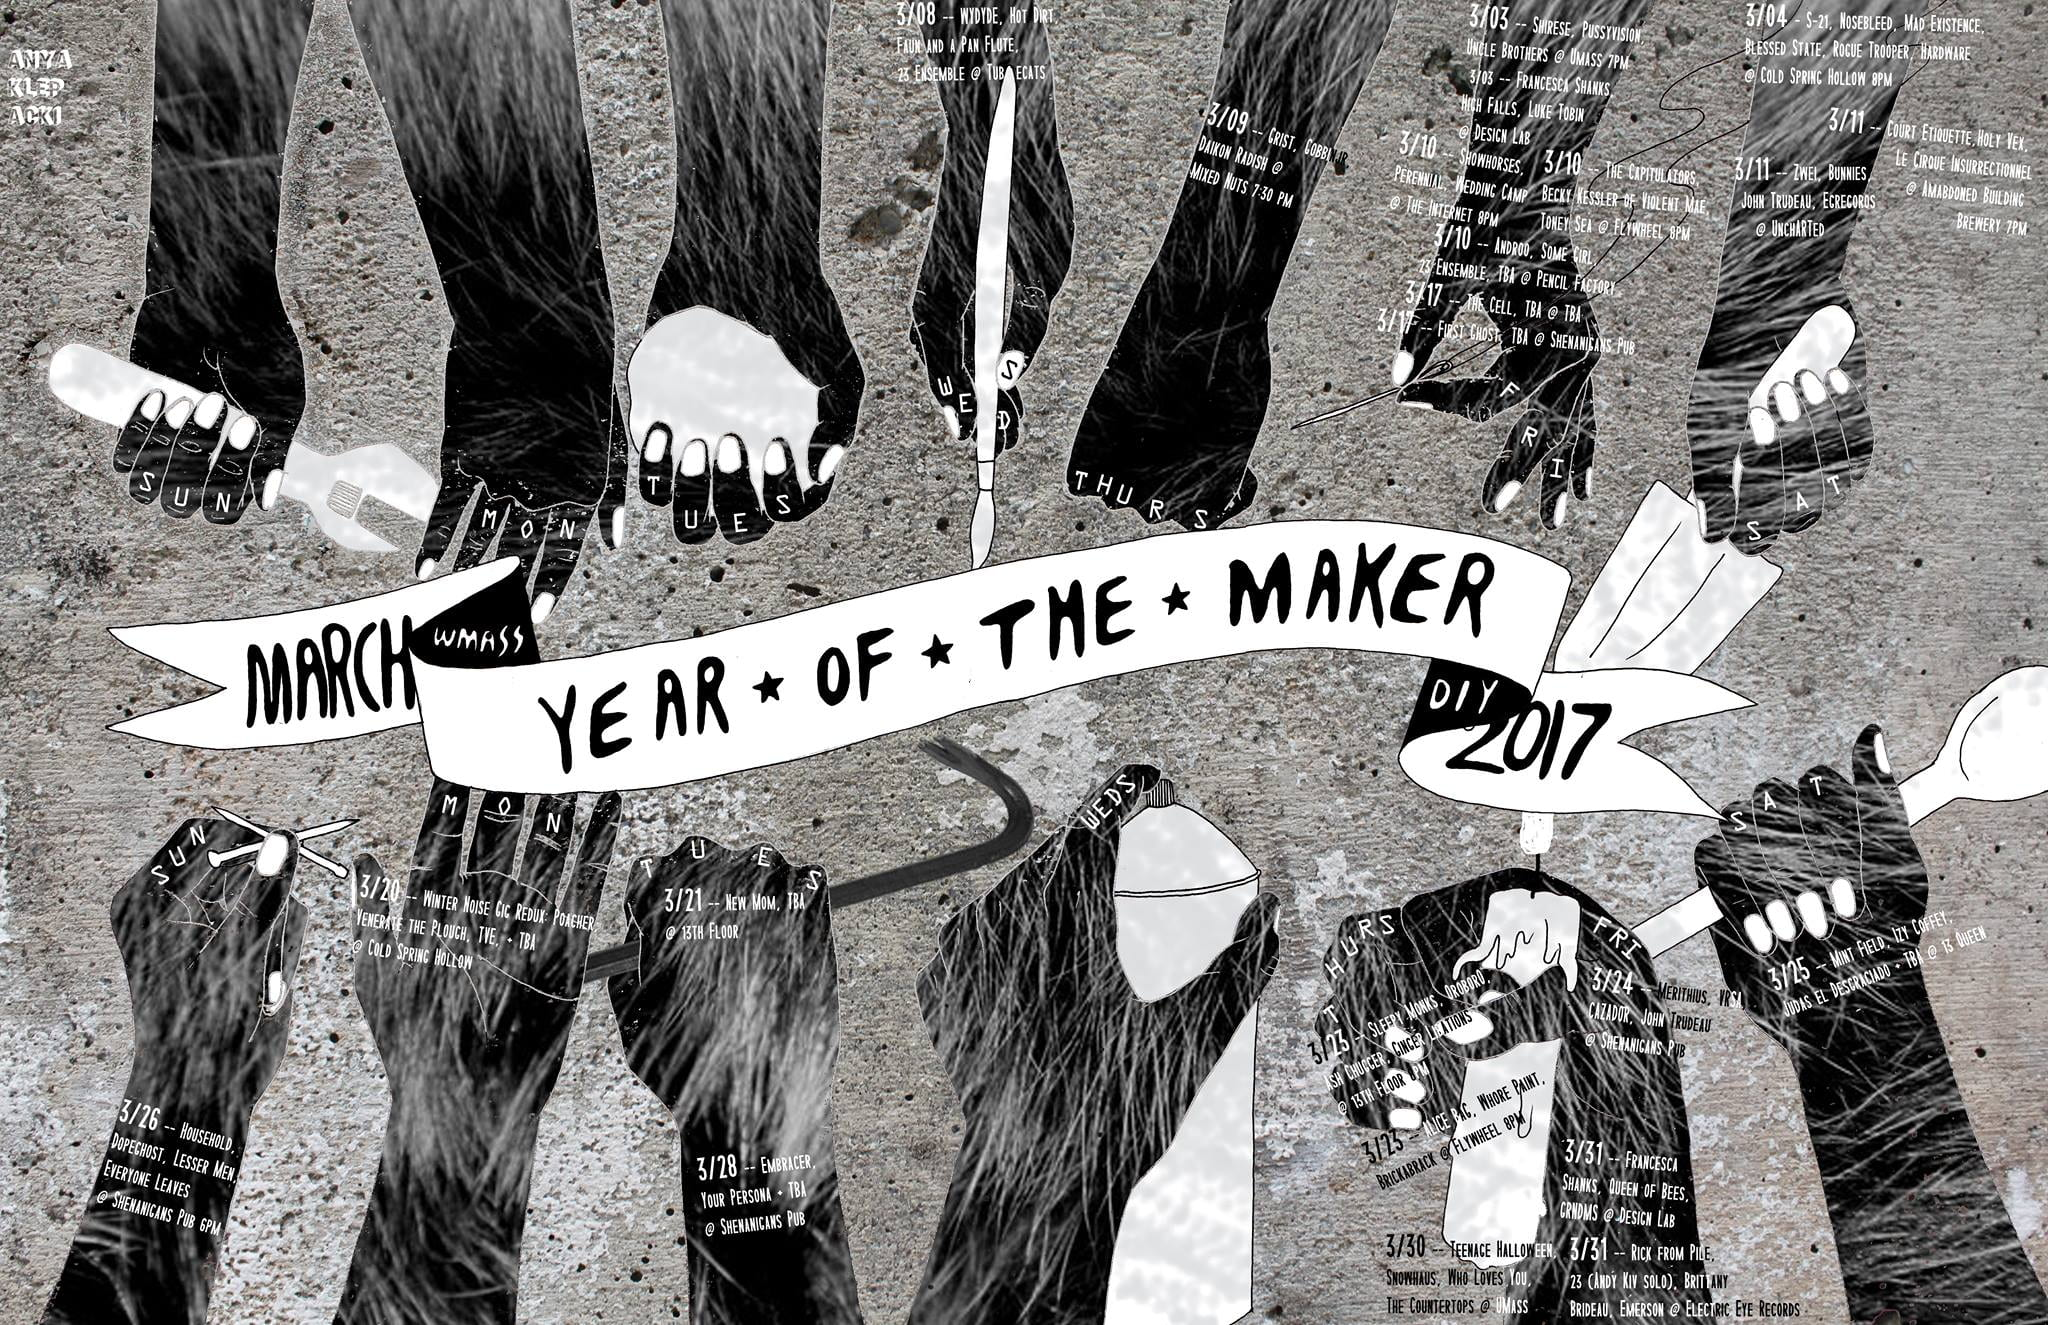 year of the maker flyer